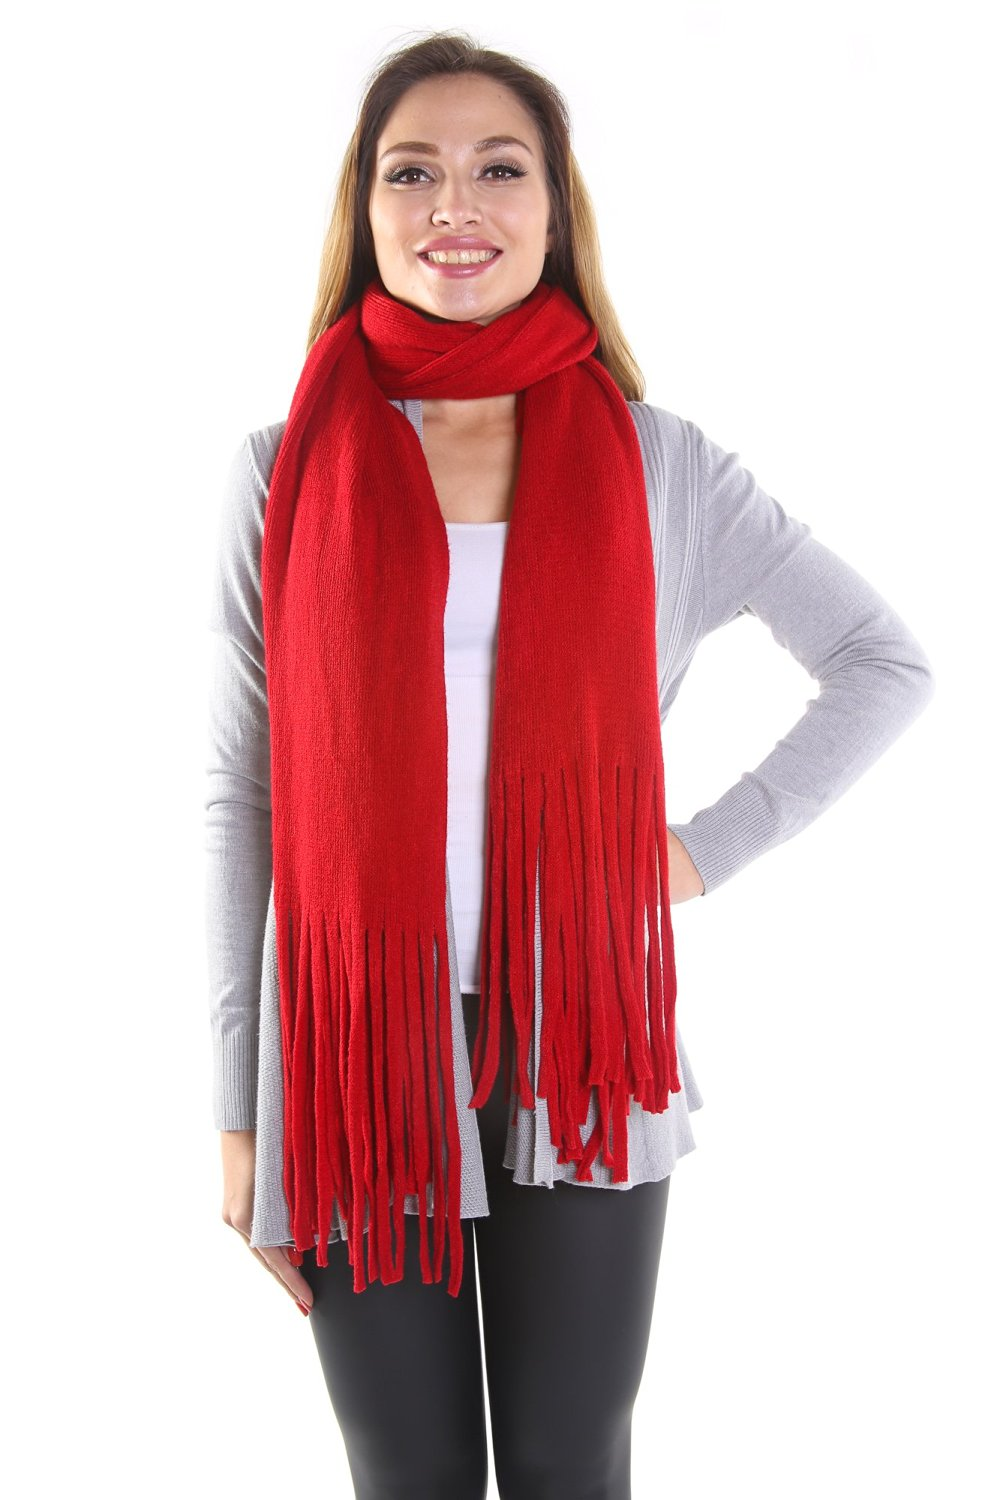 7a775591e8f Get Quotations · Hadari Women s Cozy-Chic Scarf